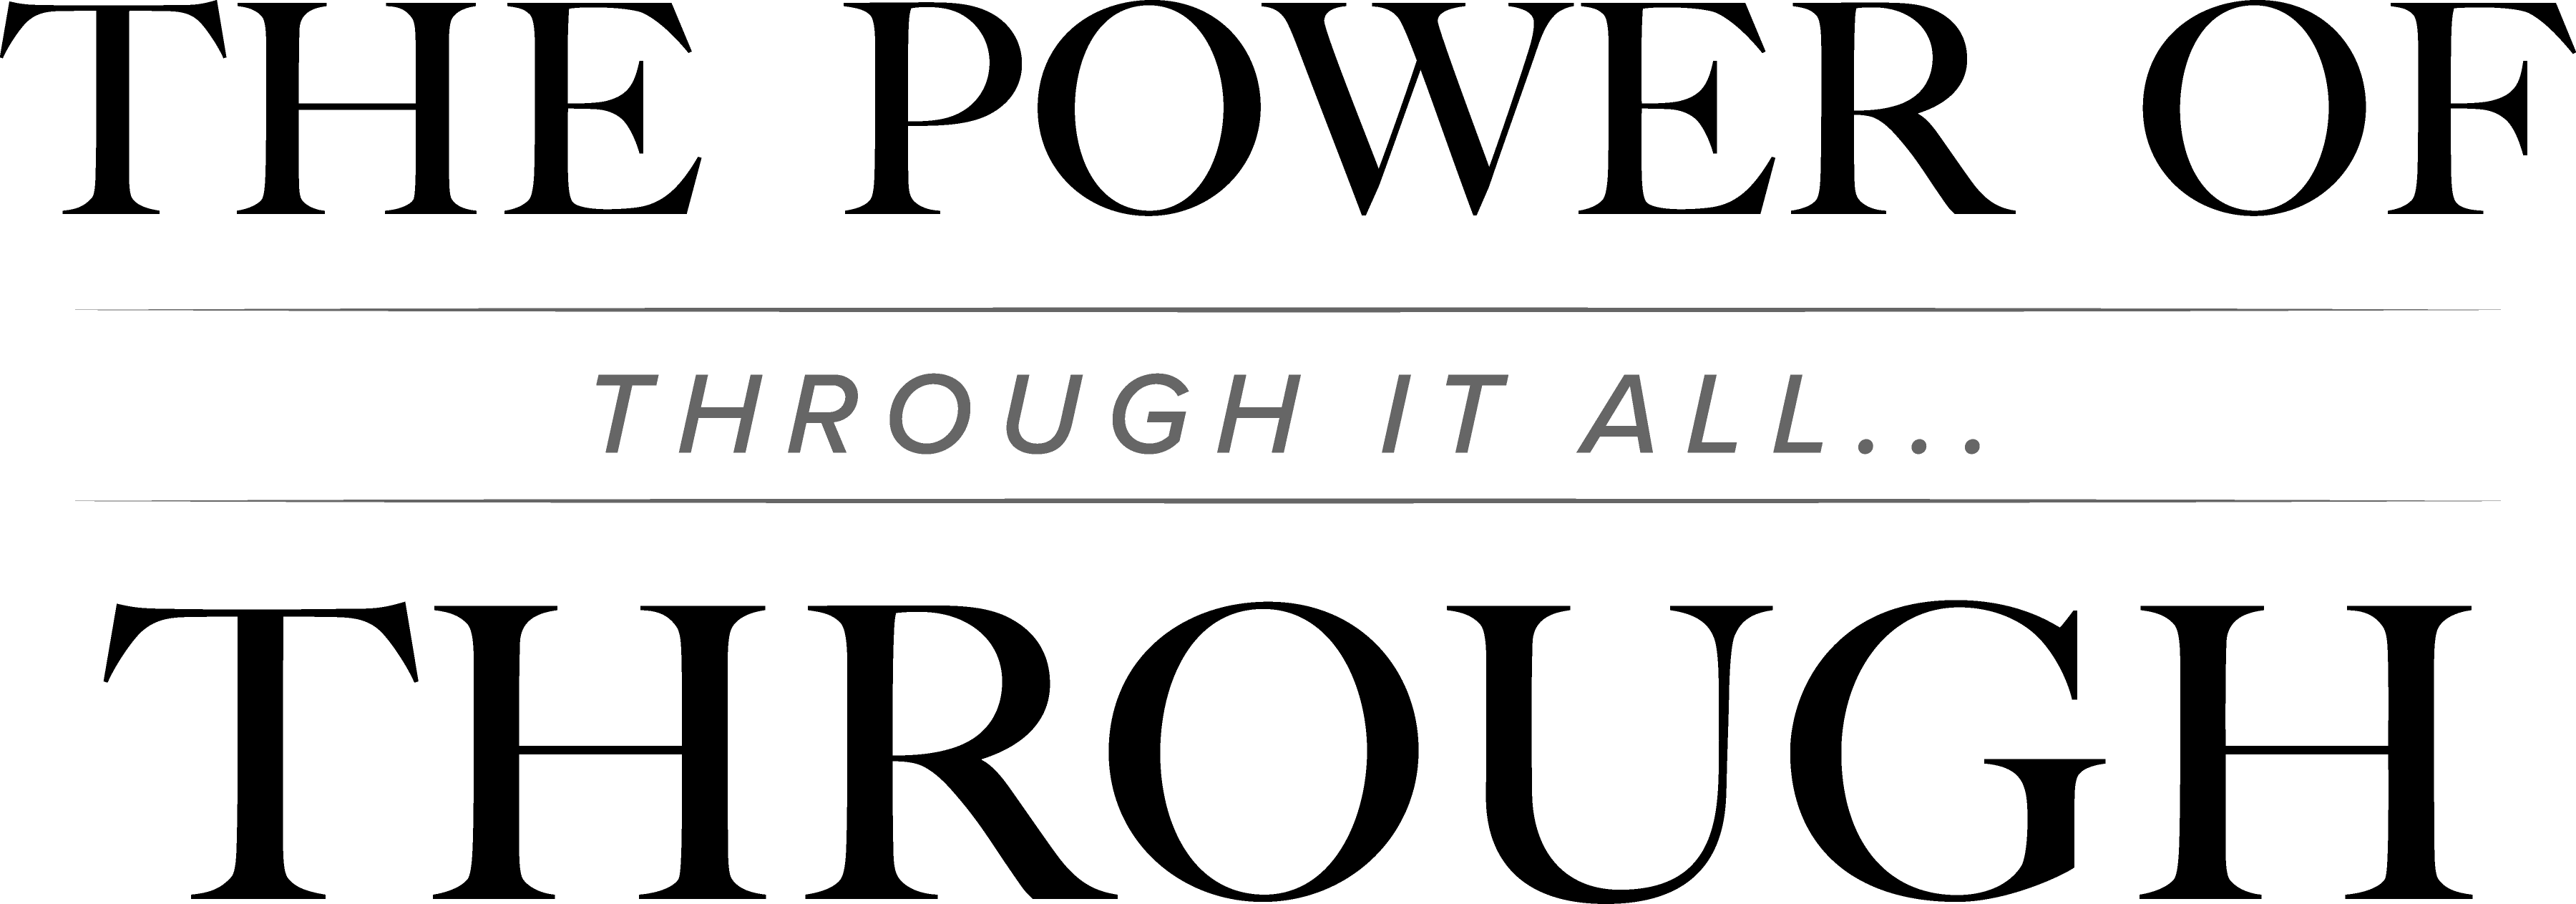 The Power of Through is the theme of a Heritage Sunday sermon from The Rev. Alfred Day III.